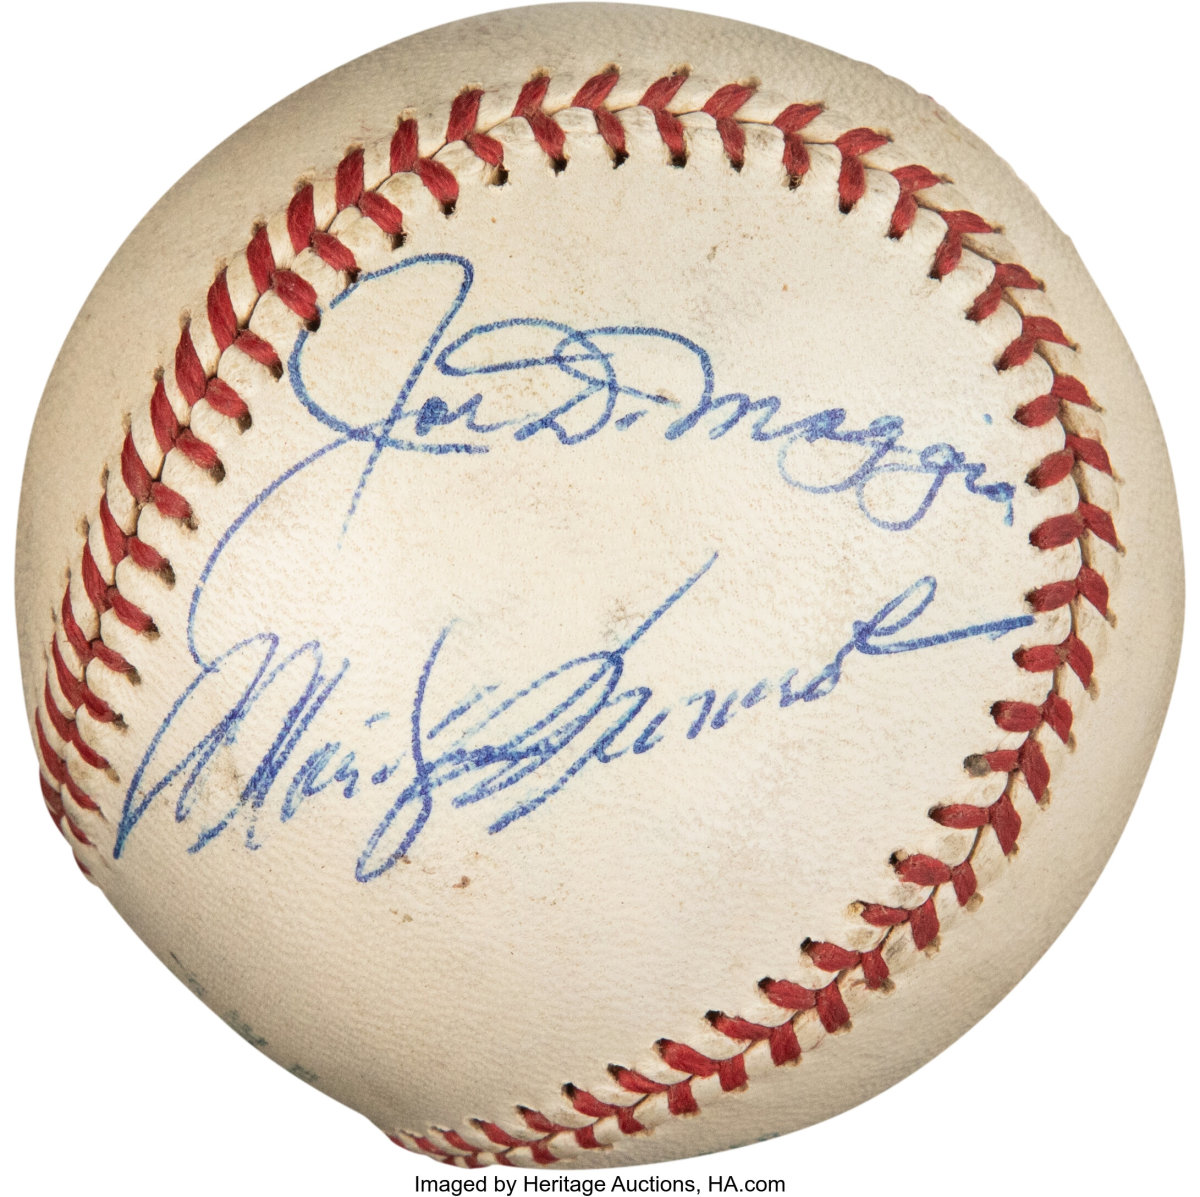 A dual-signed ball by Joe DiMaggio and Marilyn Monroe is part of Heritage Auctions' Summer Platinum Night Auction.